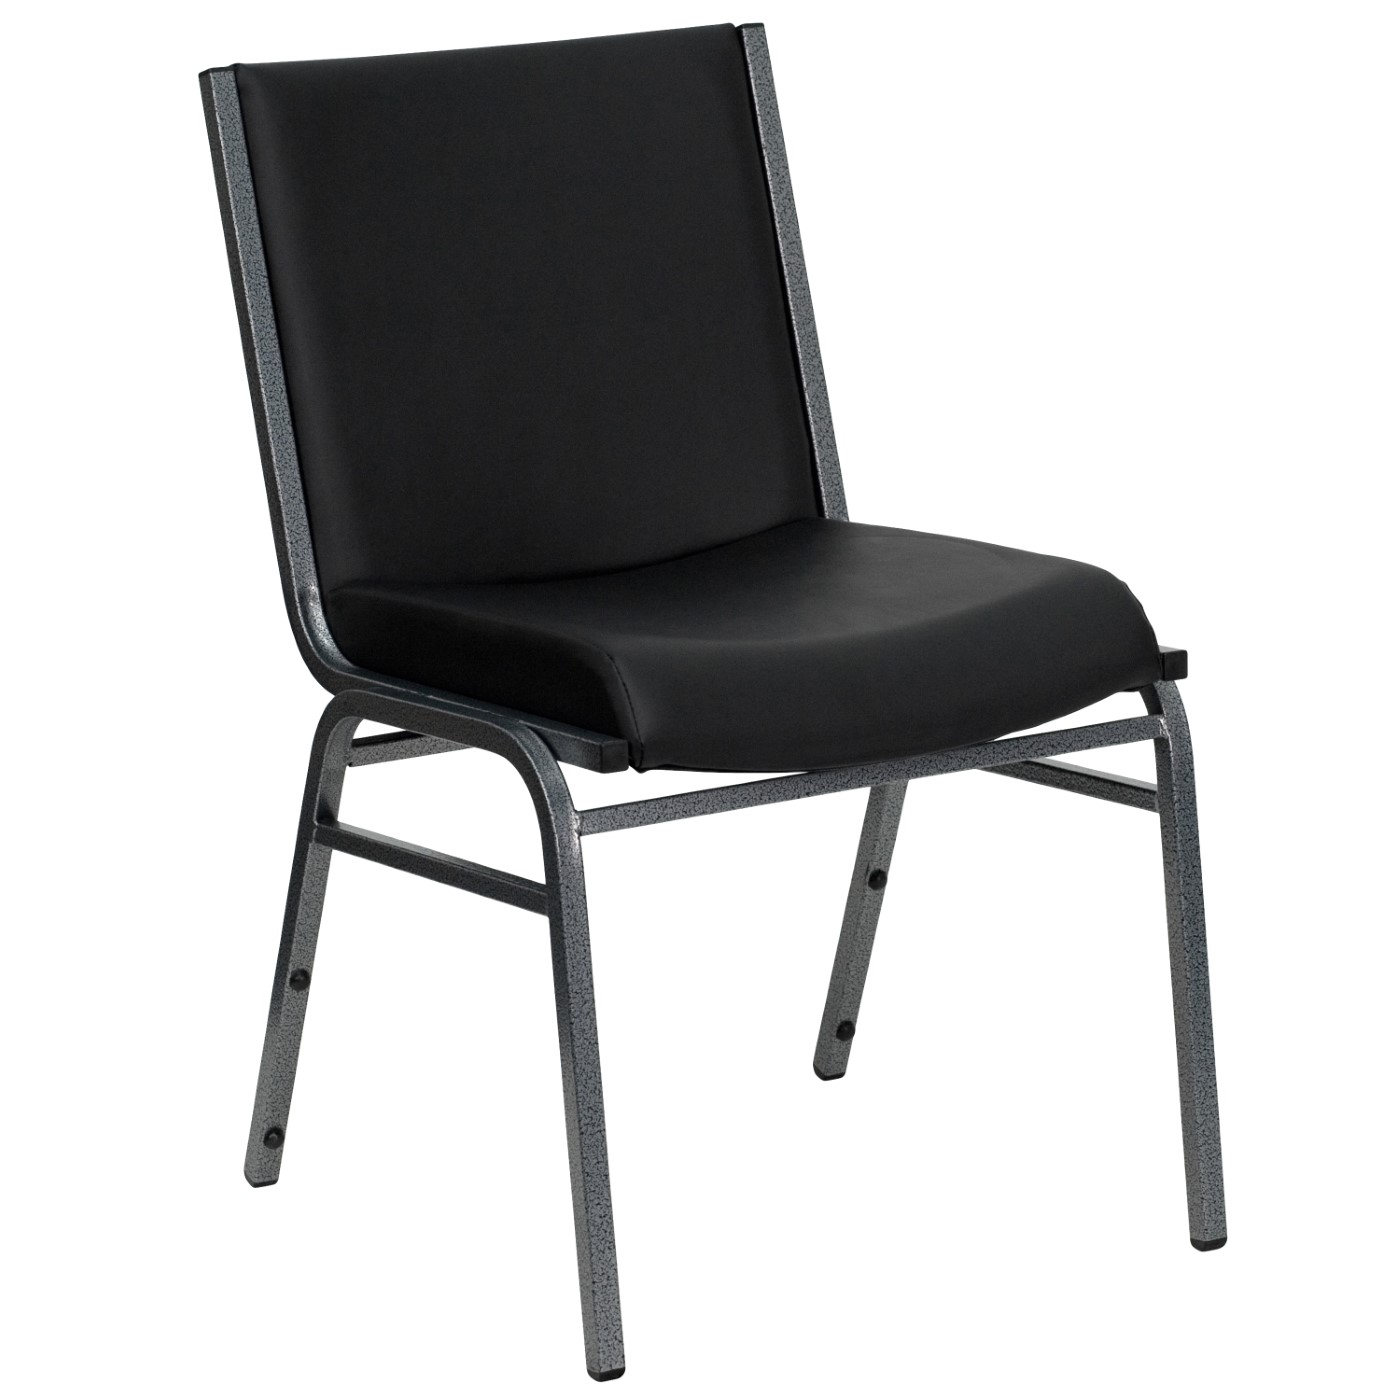 TOUGH ENOUGH Series Heavy Duty Black Vinyl Stack Chair